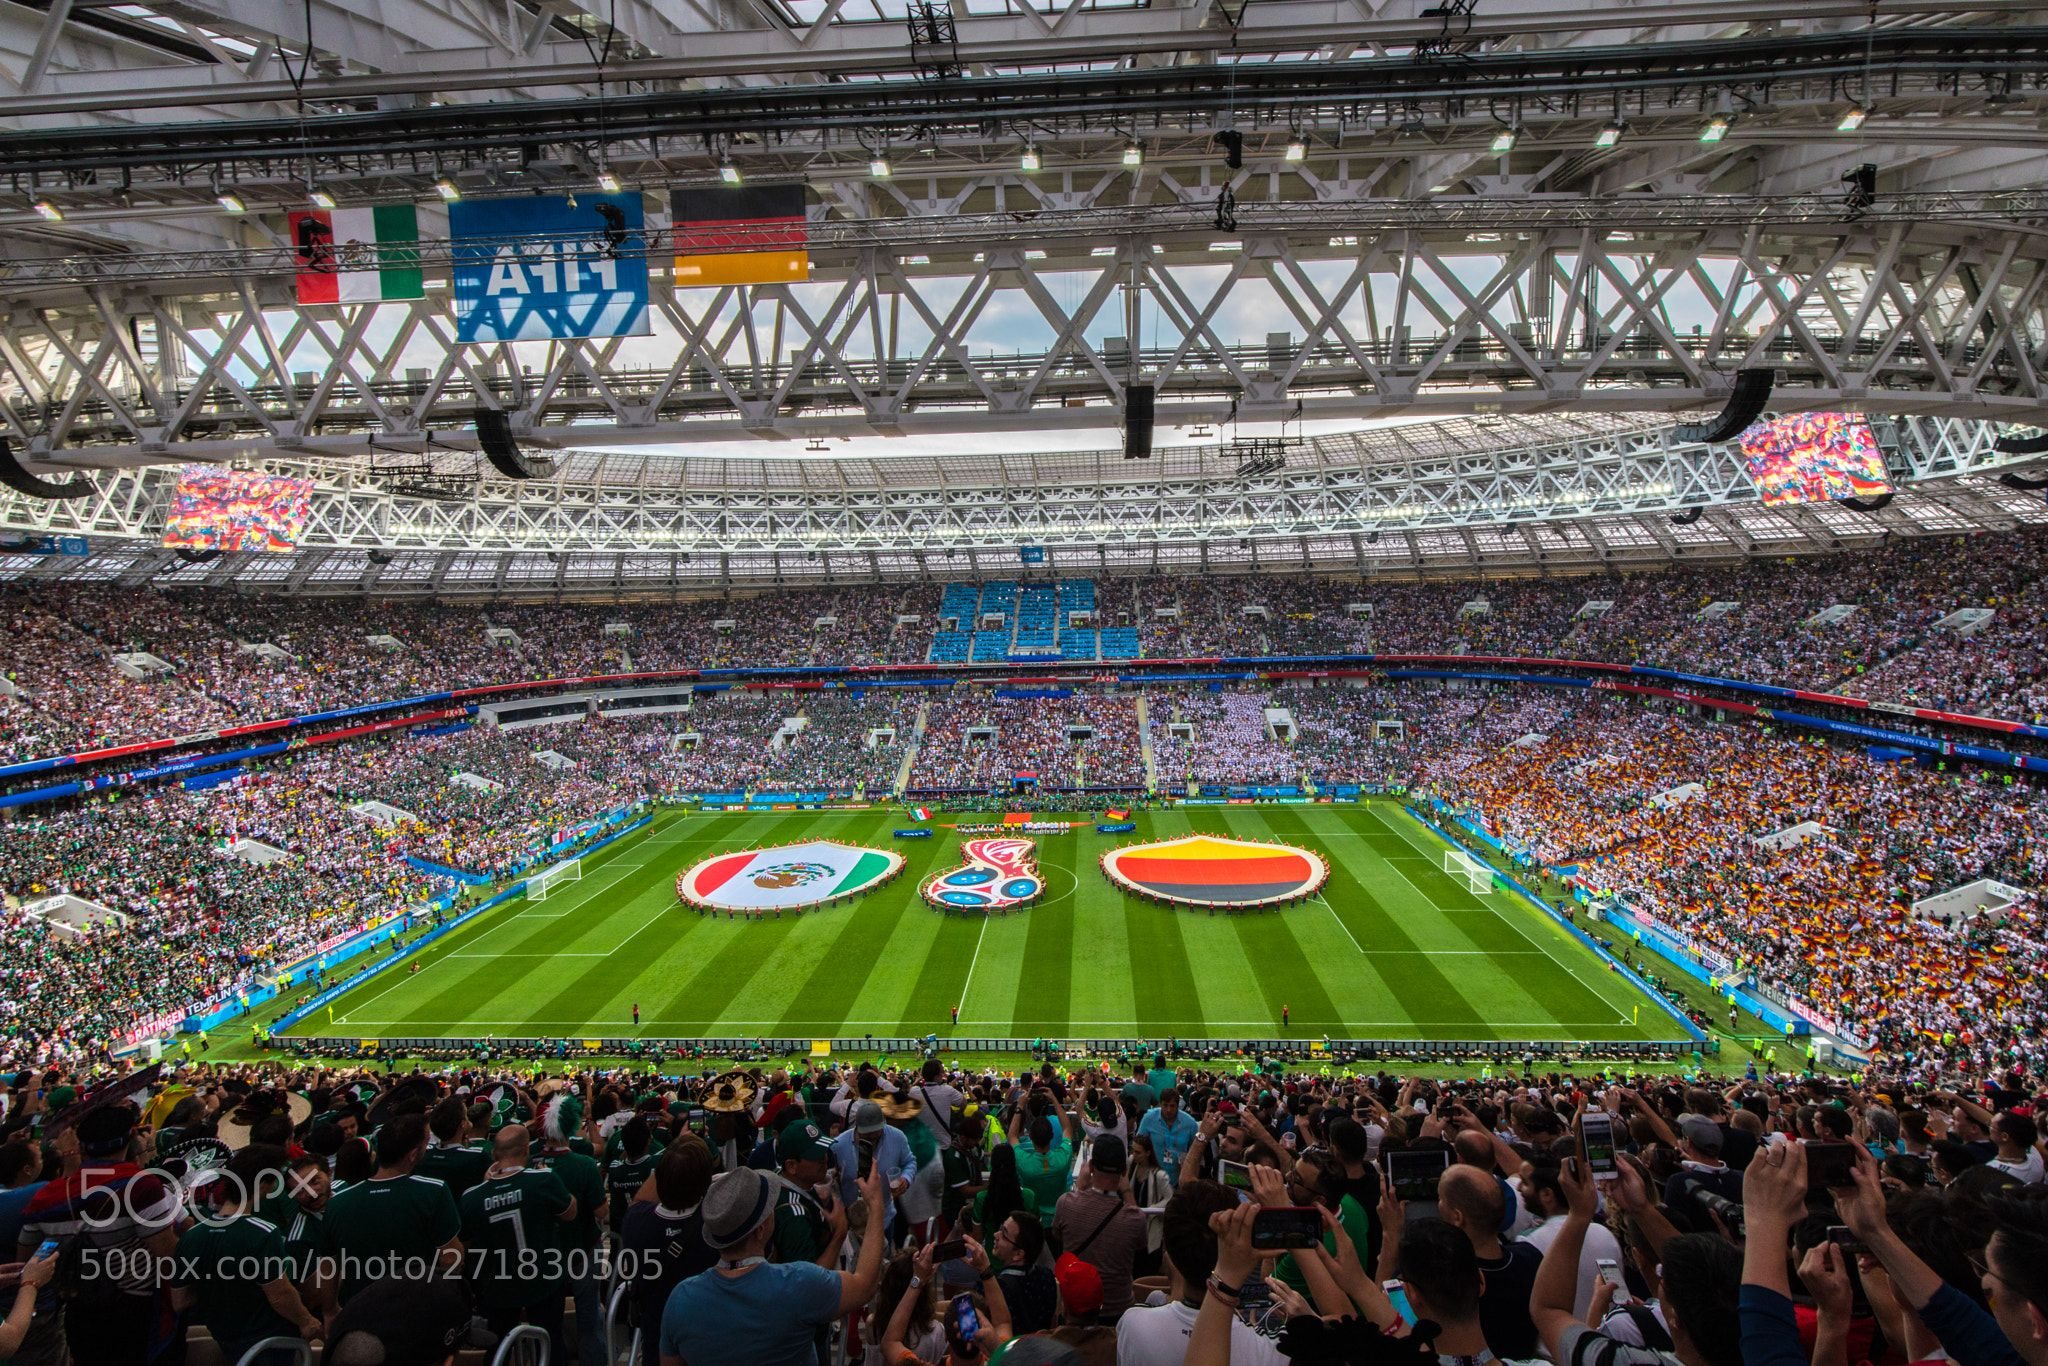 Germany Vs Mexico At Luzhniki Stadium In Moscow On June 17 During The 2018 Fifa World Cup Russia Mexico Won The Game 1 0 Germany Vs Fifa World Cup World Cup